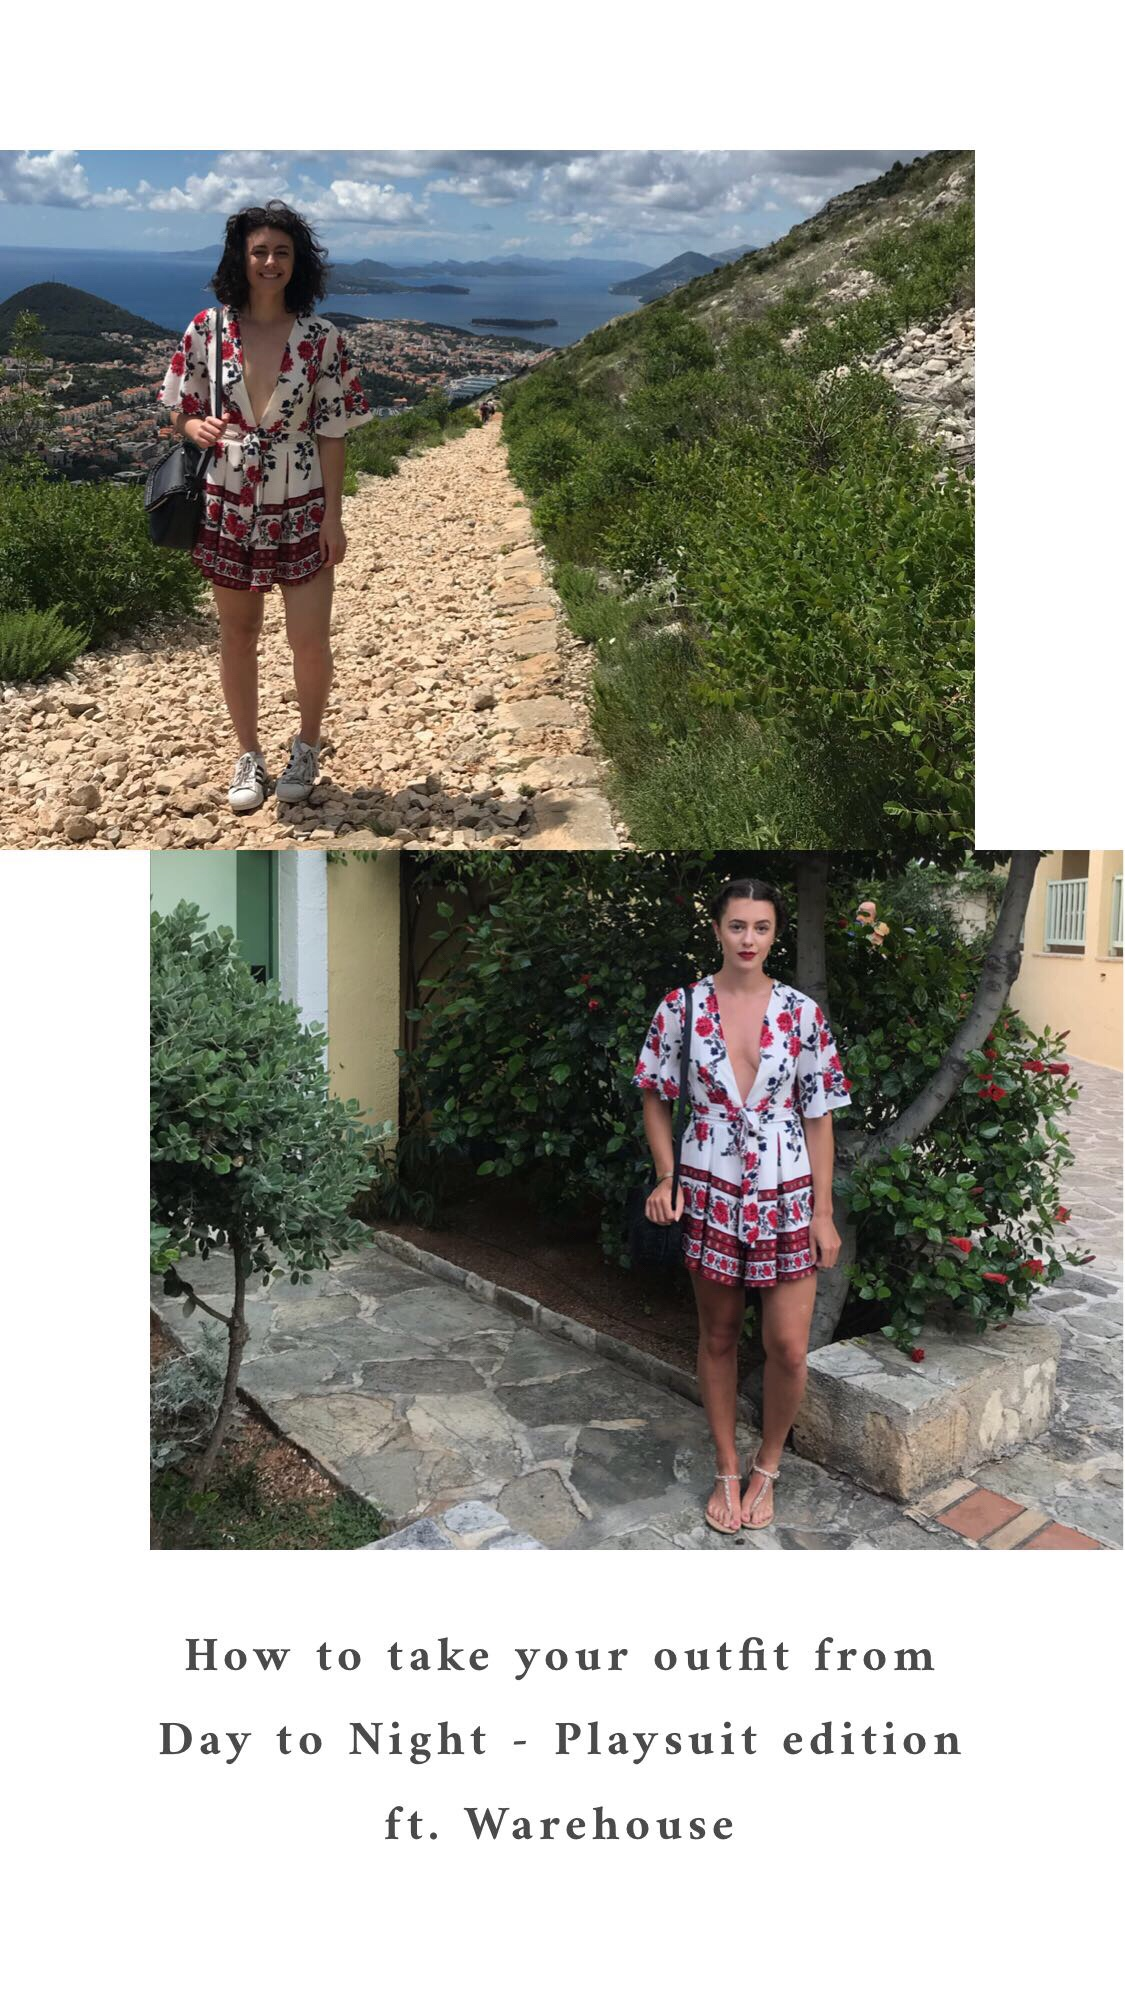 How to take your outfit from day to night - playsuit edition ft. Warehouse